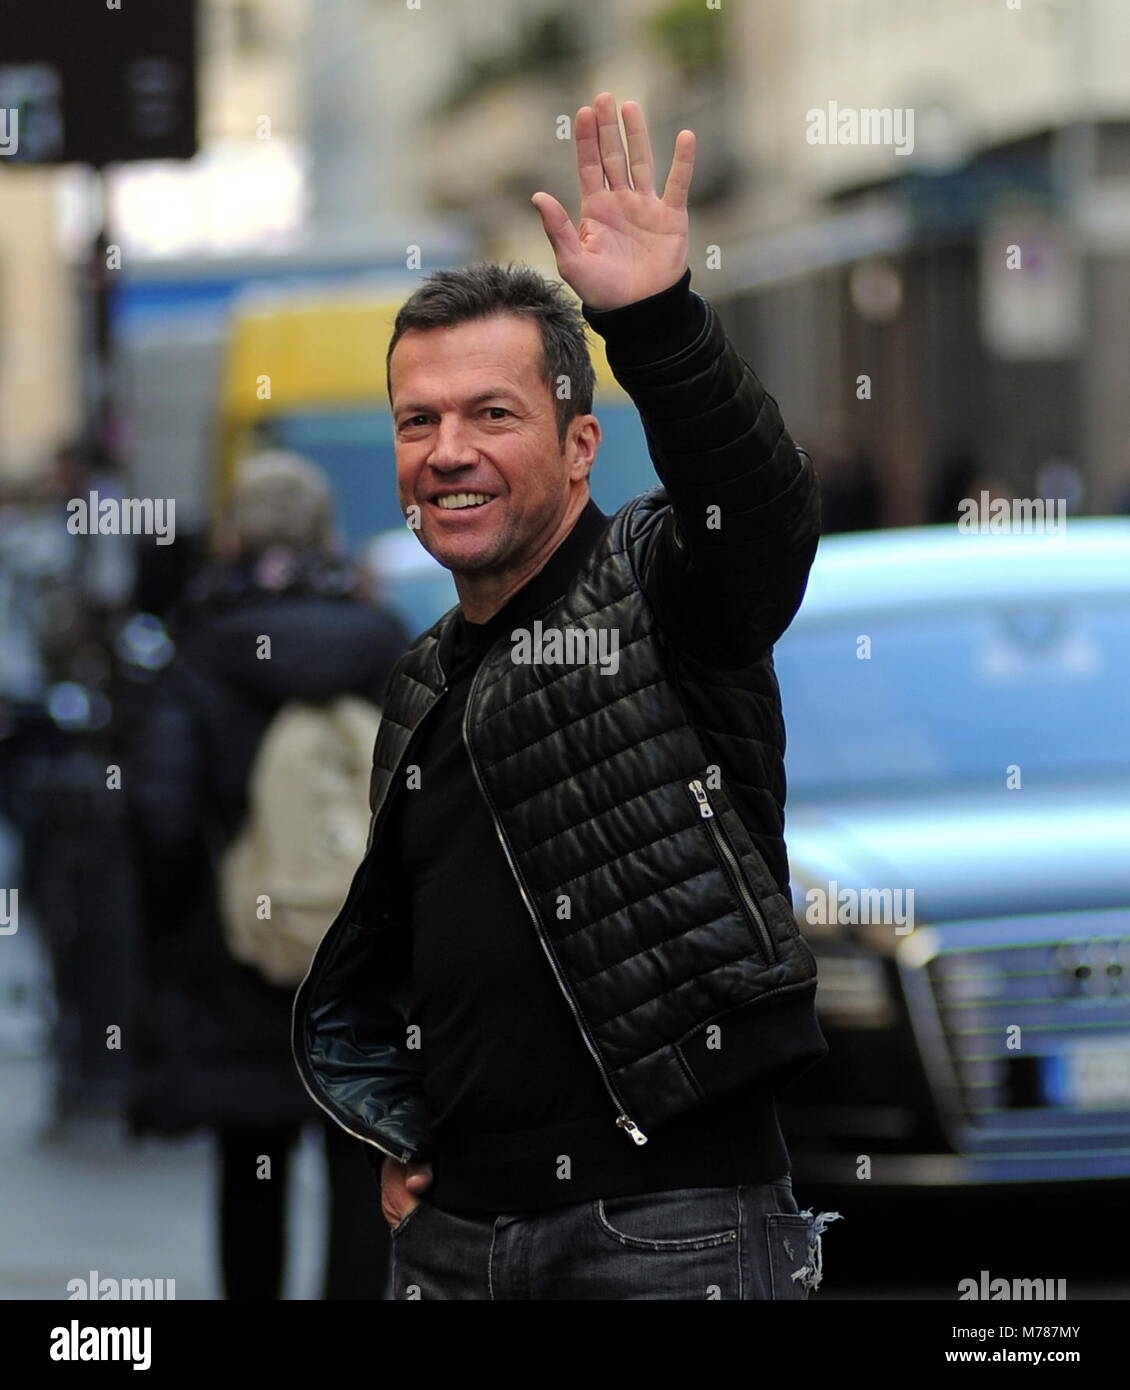 """Milan, Lothar Matthaus at lunch in a restaurant in the center with a friend Lothar Matthaus, former champion of Inter and of the national team of Germany as well as coach, arrives in the center to participate in the 110th anniversary of the INTER foundation, a team in which he has played from 1988 to 1992, winning also a Scudetto. In the afternoon he took the opportunity to walk around the center, also going to lunch at the """"SALUMAIO DI MONTENAPOLEONE"""" together with a friend. Stock Photo"""